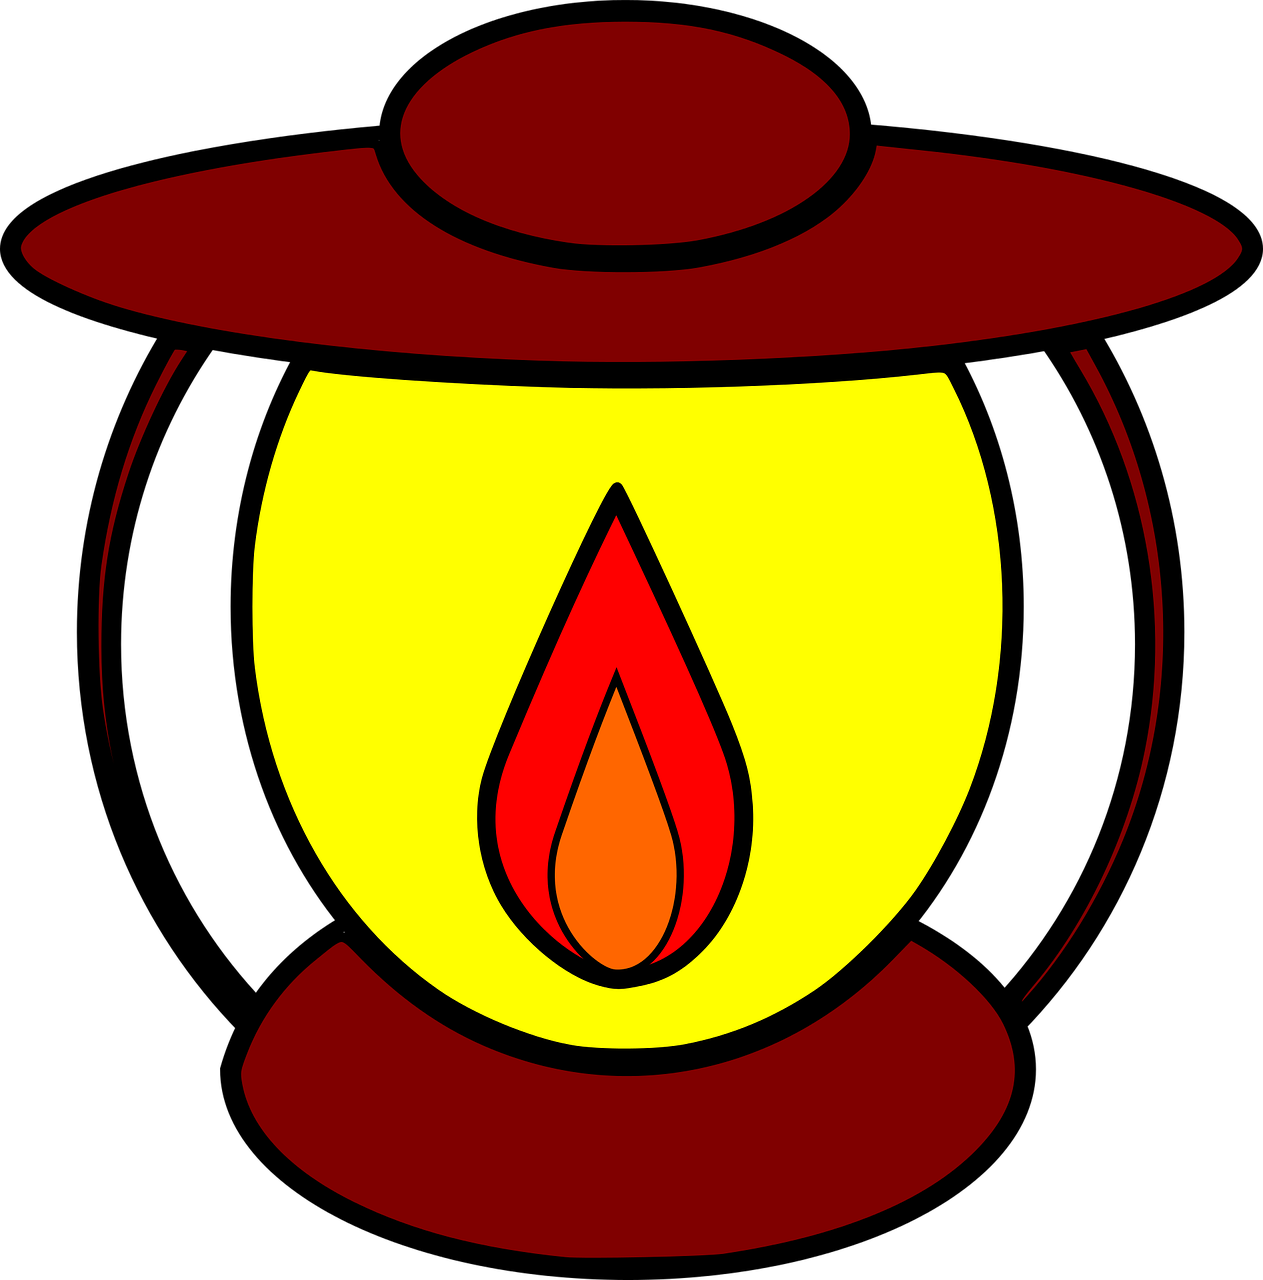 Fire png amazing size. Lamp clipart paraffin lamp